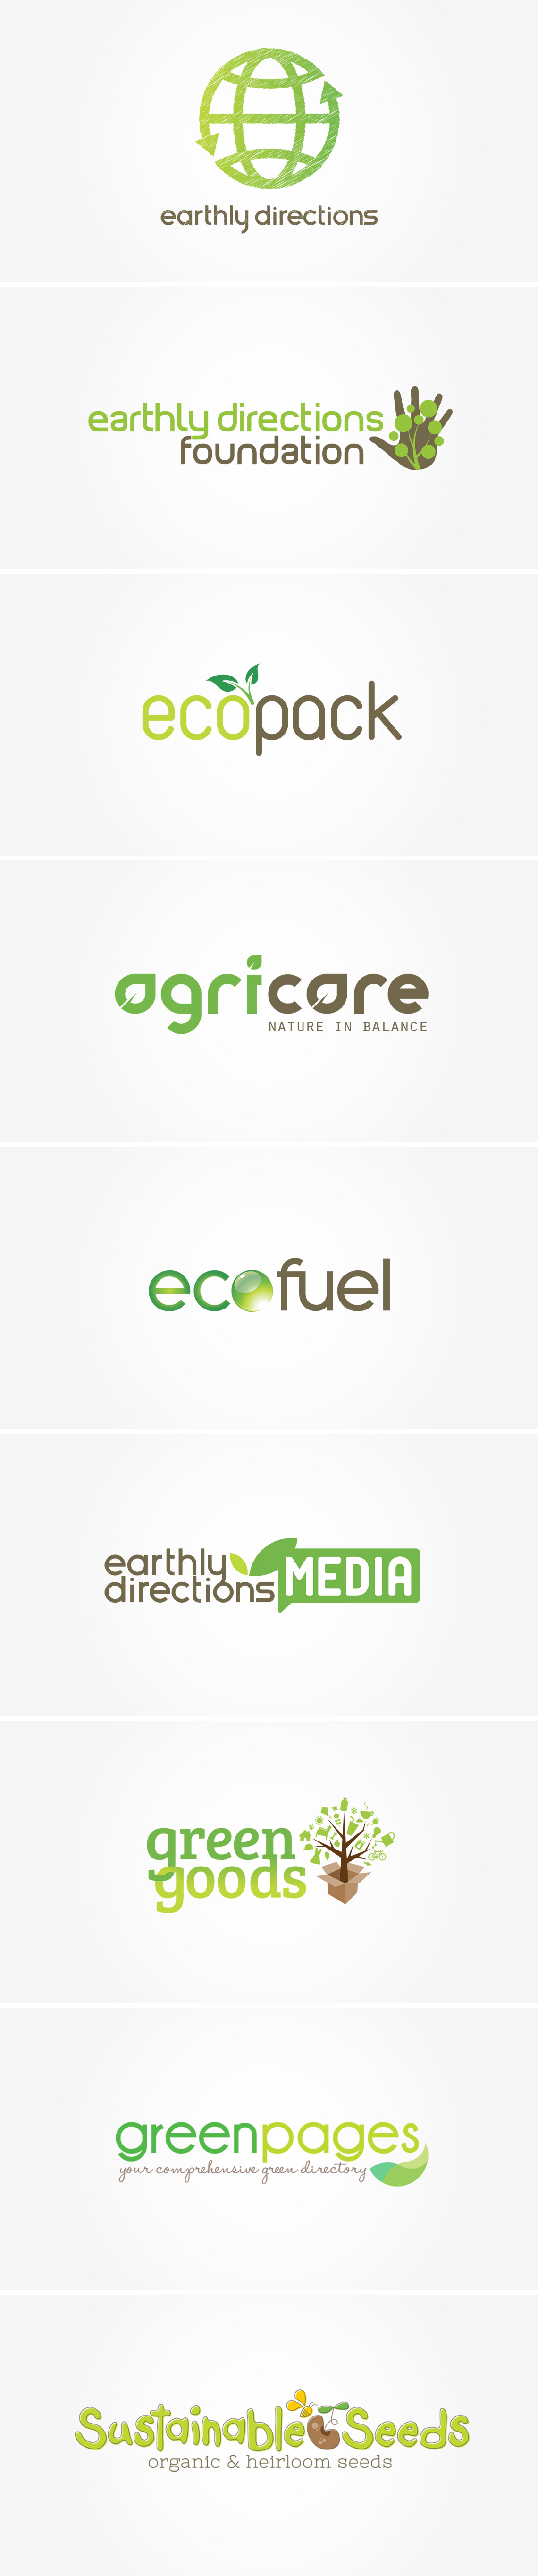 Logo Design Earthly Directions